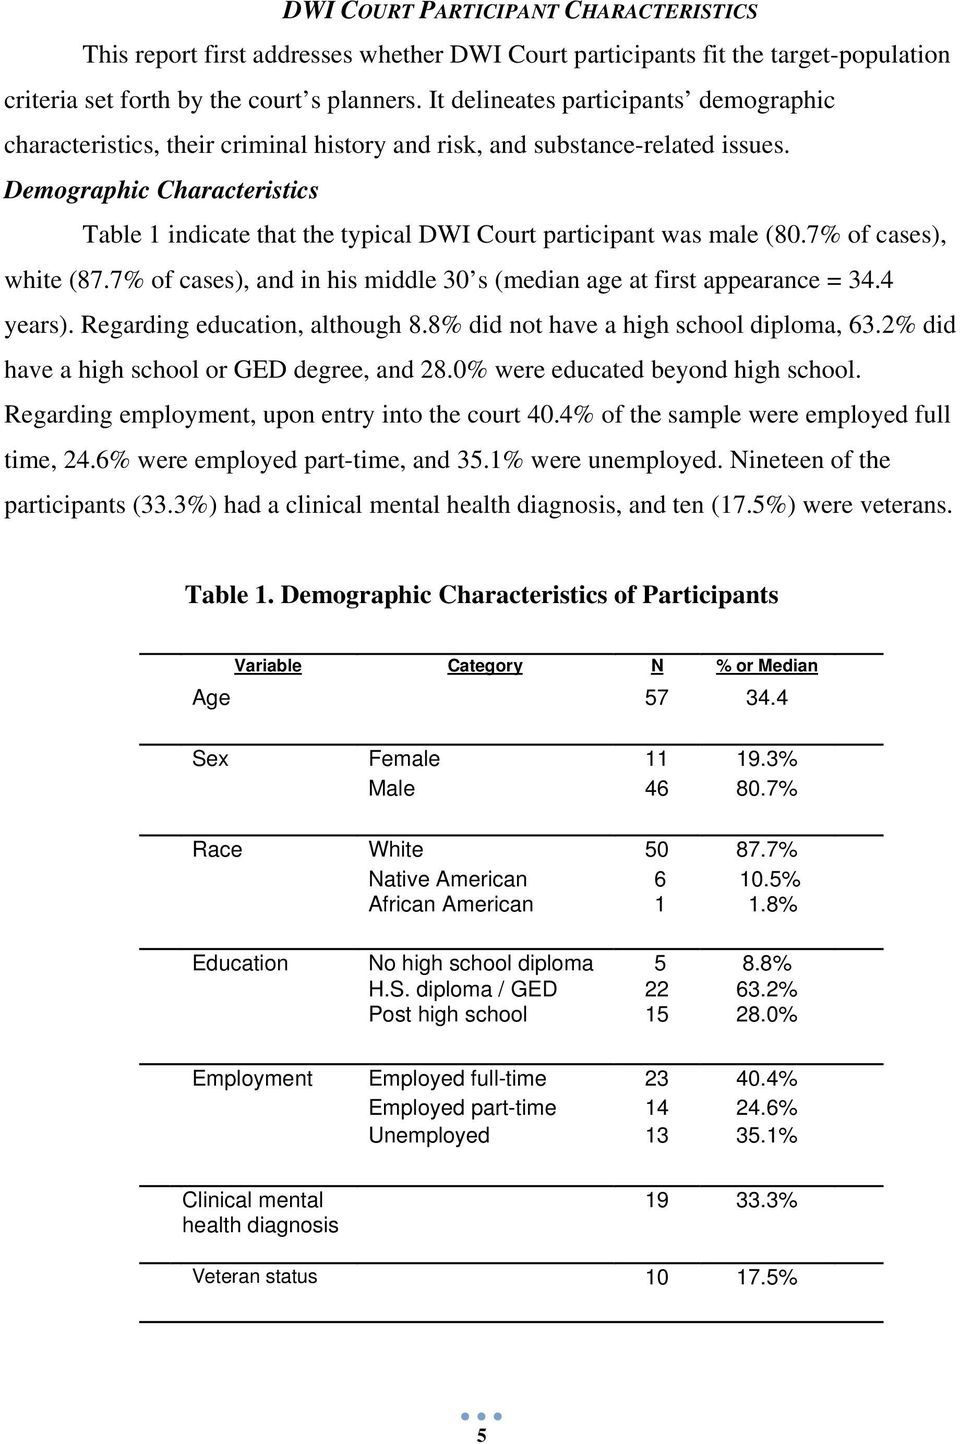 Demographic Characteristics Table 1 indicate that the typical DWI Court participant was male (80.7% of cases), white (87.7% of cases), and in his middle 30 s (median age at first appearance = 34.